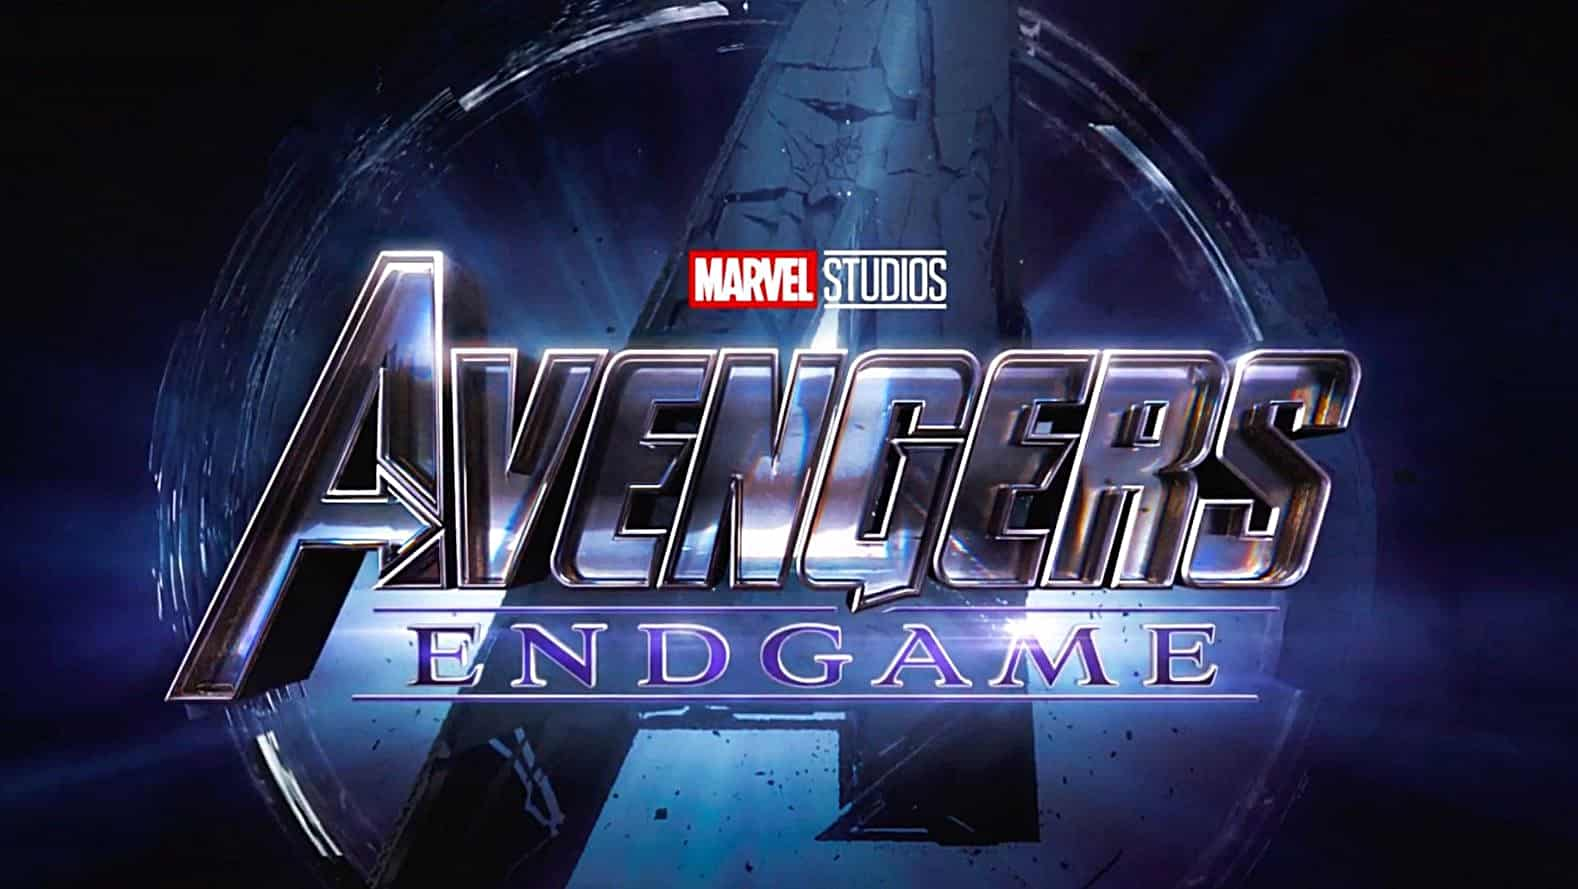 Avengers Endgame Release Date Photo: 'Avengers: Endgame' Gets New Official April Release Date